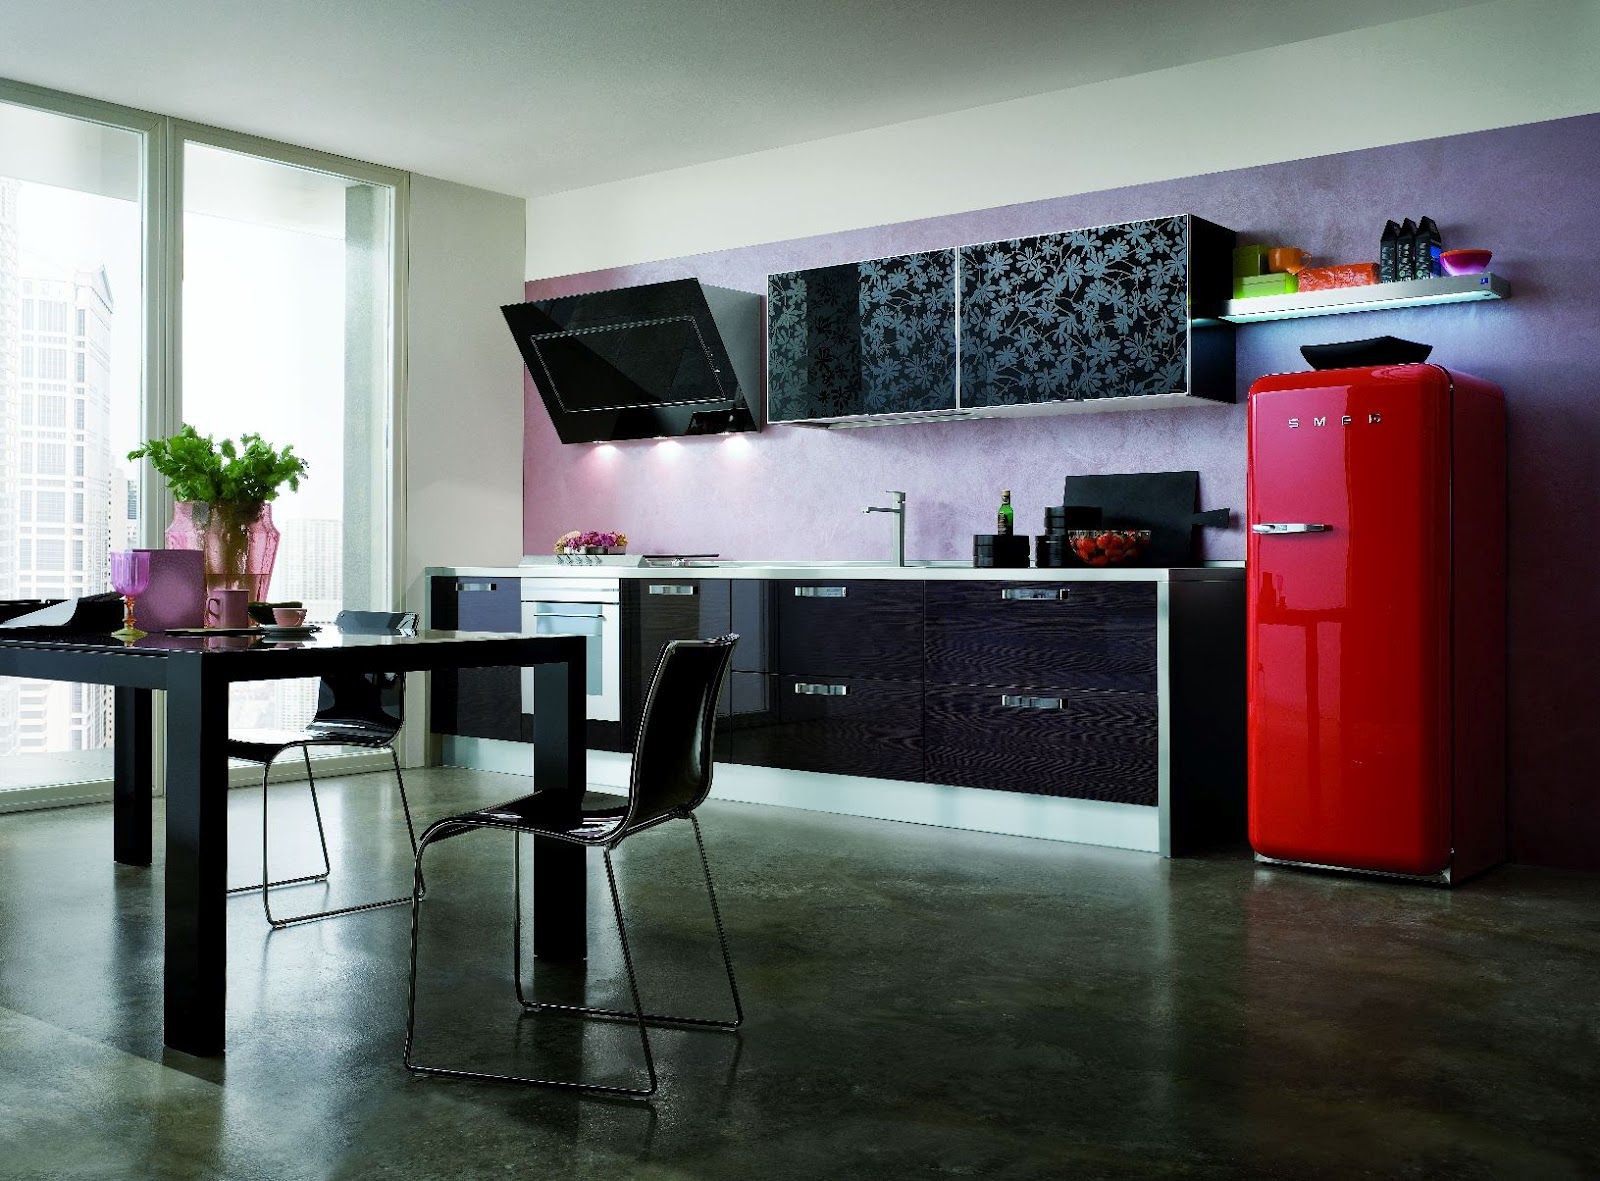 Smeg for Design cuisine